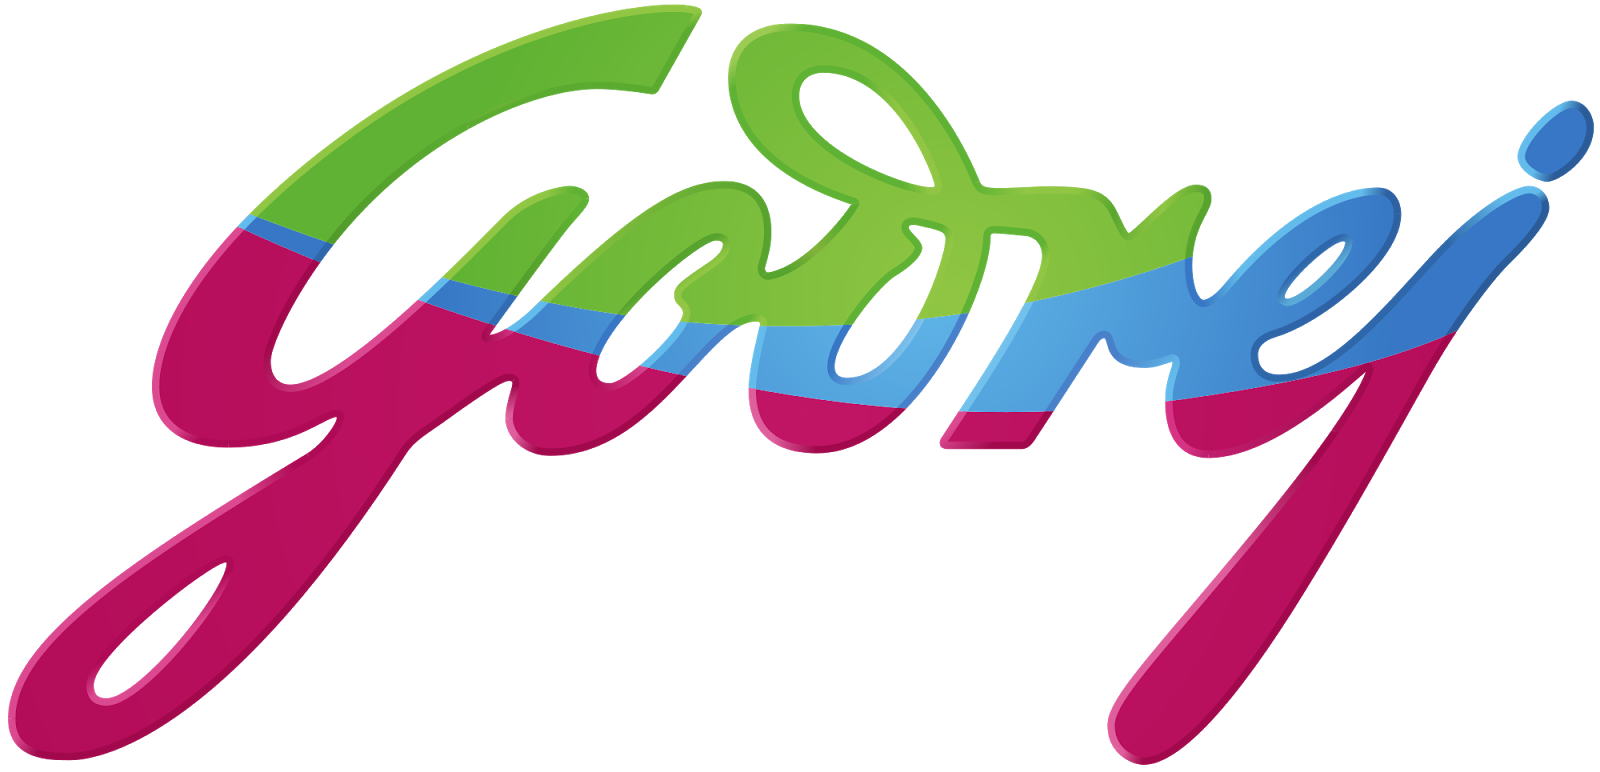 Godrej plans to open two Good Knight manufacturing units in Africa